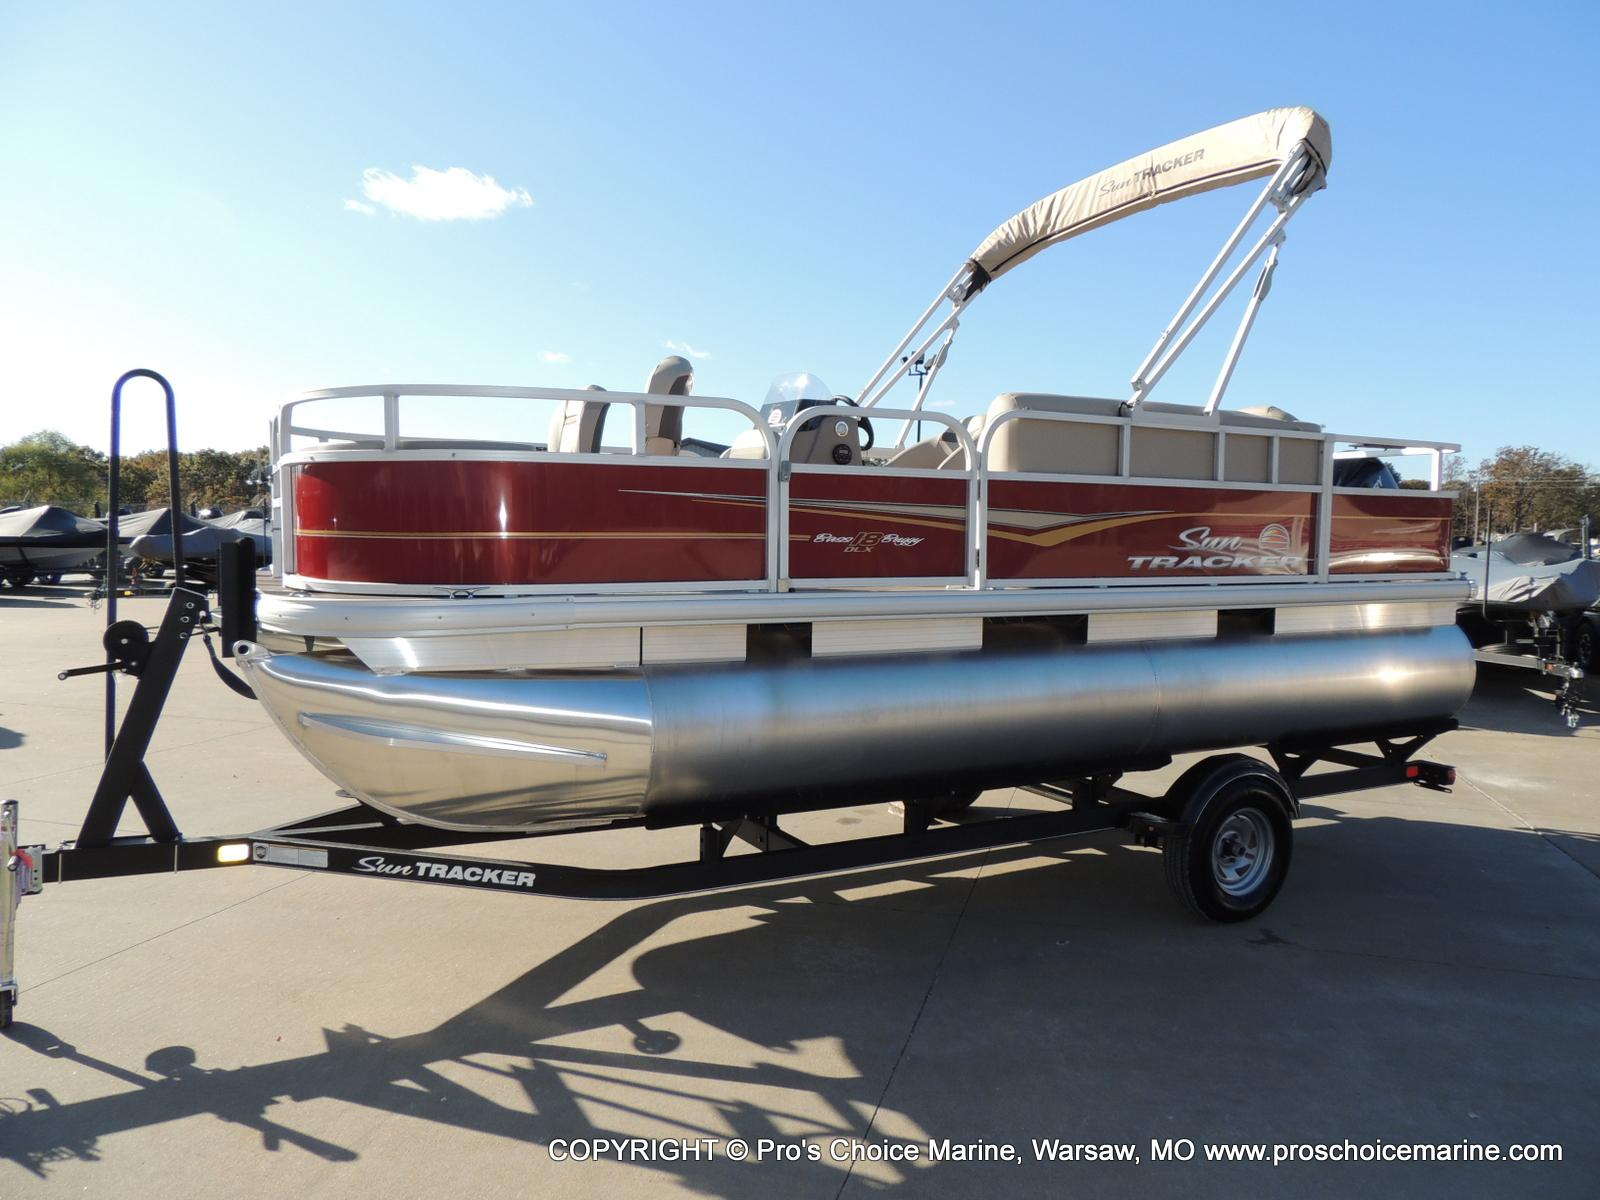 2020 Sun Tracker boat for sale, model of the boat is Bass Buggy 18 DLX & Image # 42 of 50